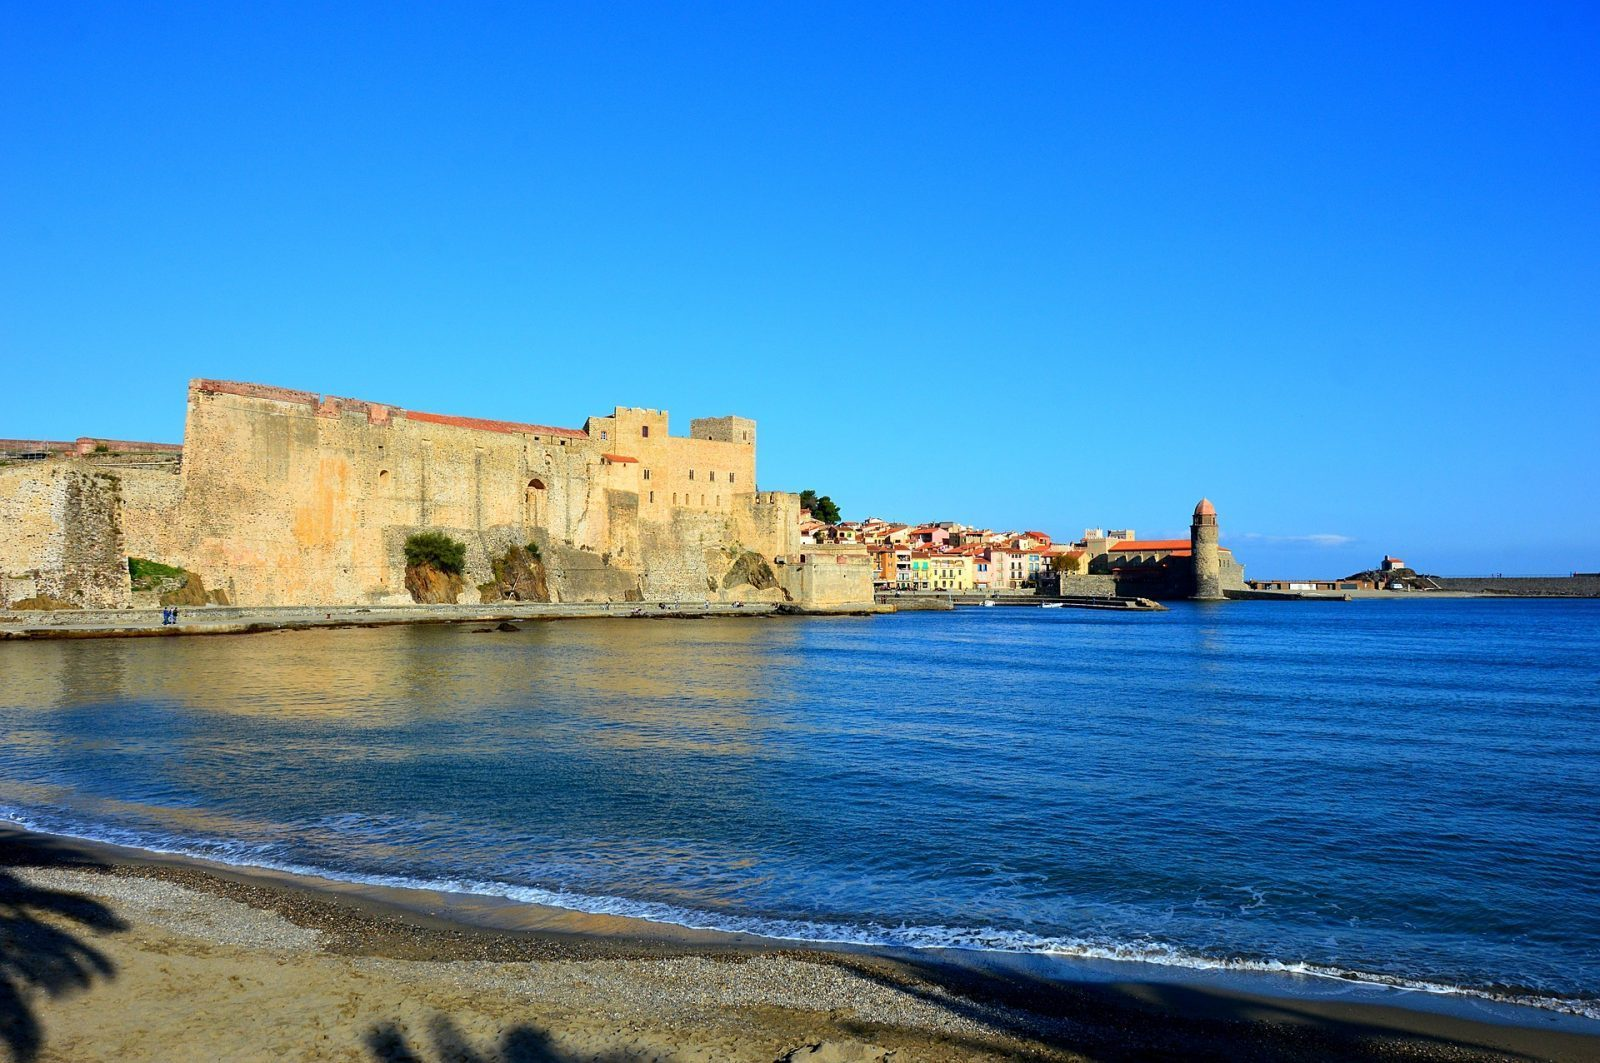 Collioure   Collioure on the Mediterranean coast of France is ever-popular with artists. The Modern Art Museum includes paintings by Henri Matisse.